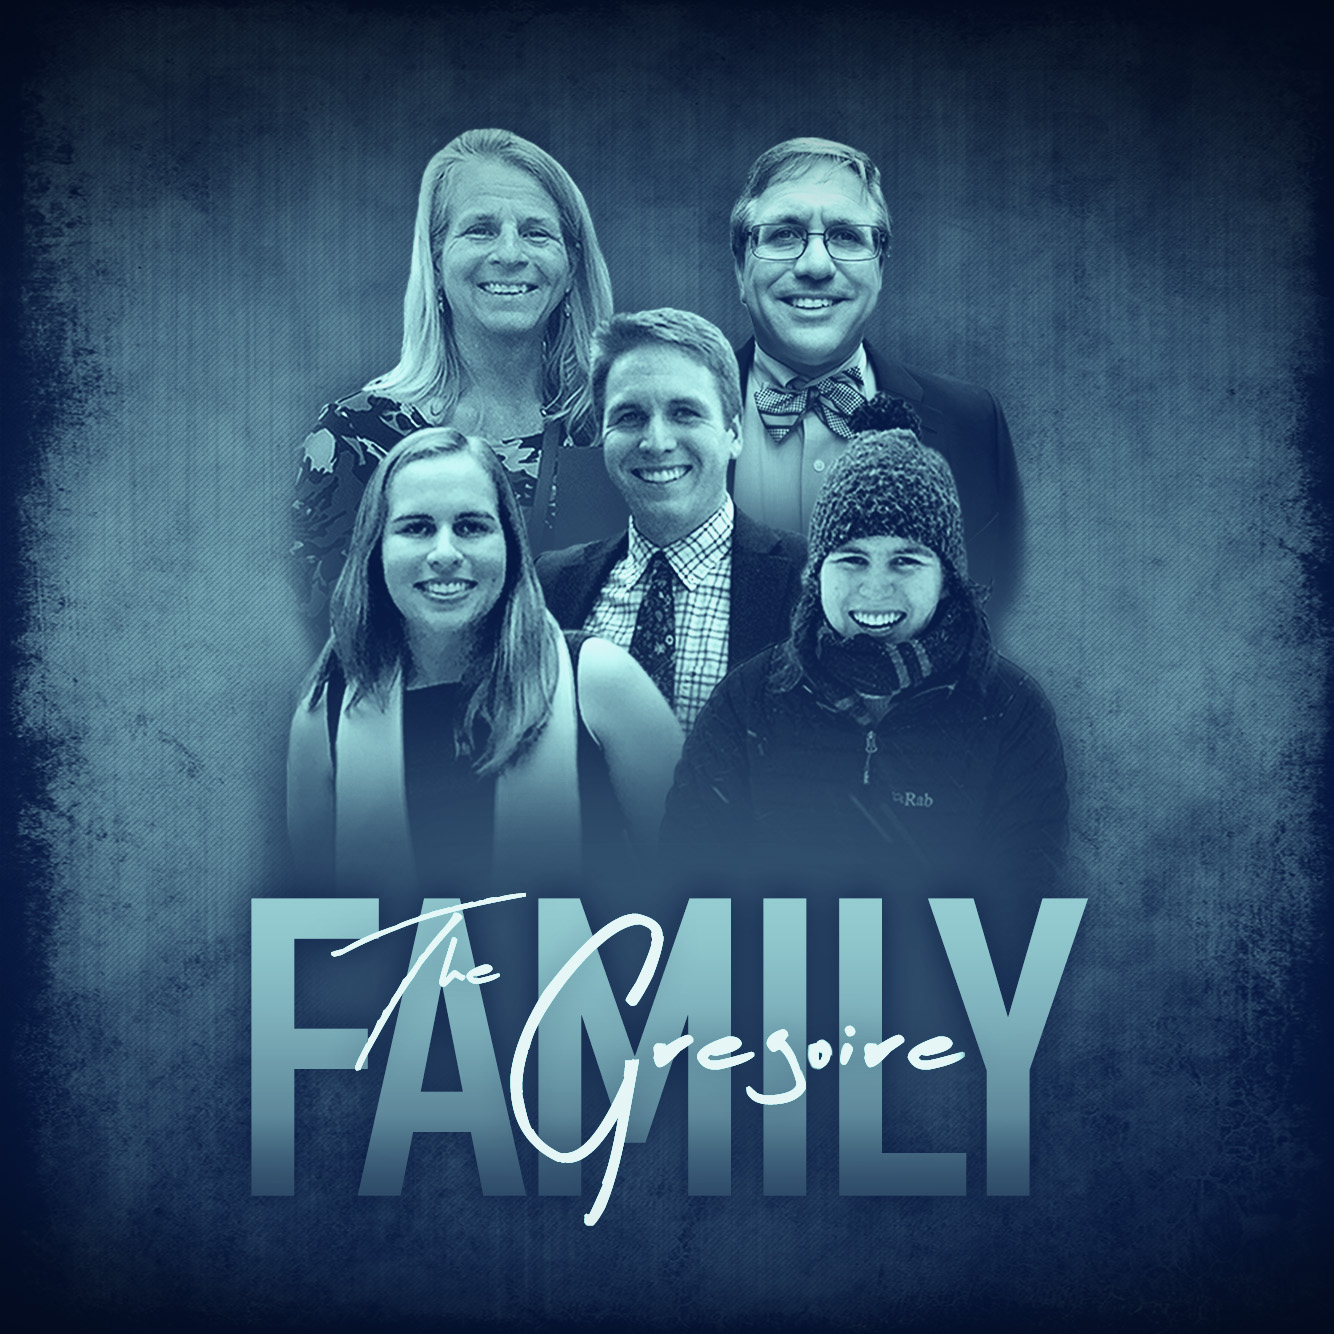 Gregoire Family<div style='clear:both;width:100%;height:0px;'></div><span class='desc'>Fun graphic of my family originally created as a lock screen wallpaper for my phone, but altered to go on social media. </span>